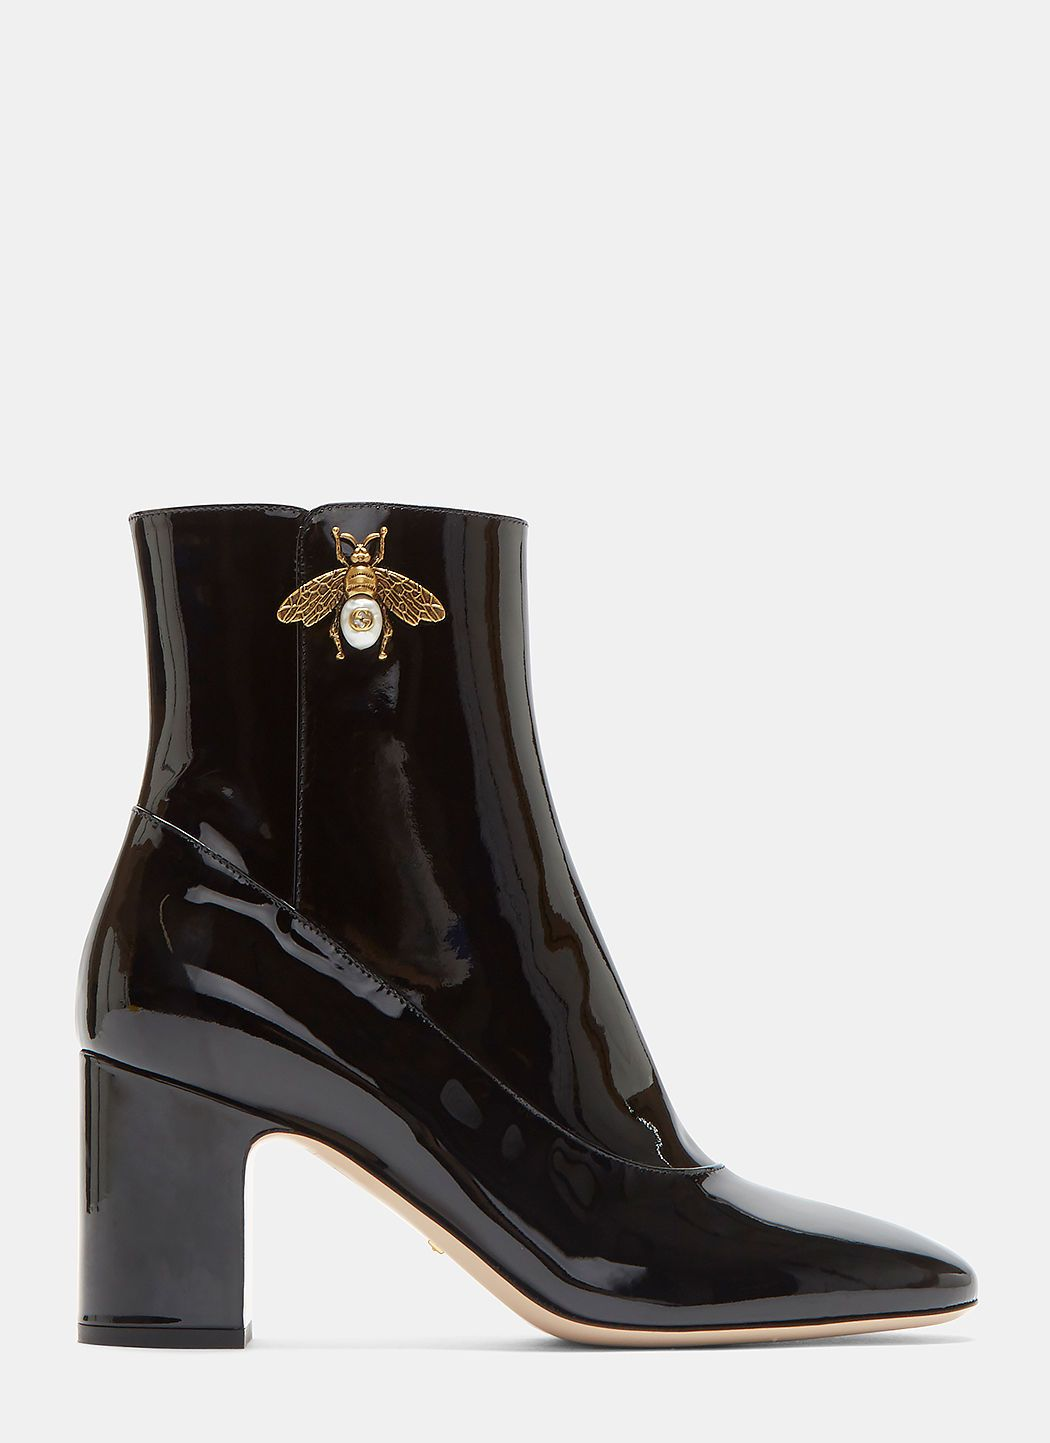 be63b4c8509b GUCCI Gold Bee Motif Patent Ankle Boots In Black.  gucci  shoes ...